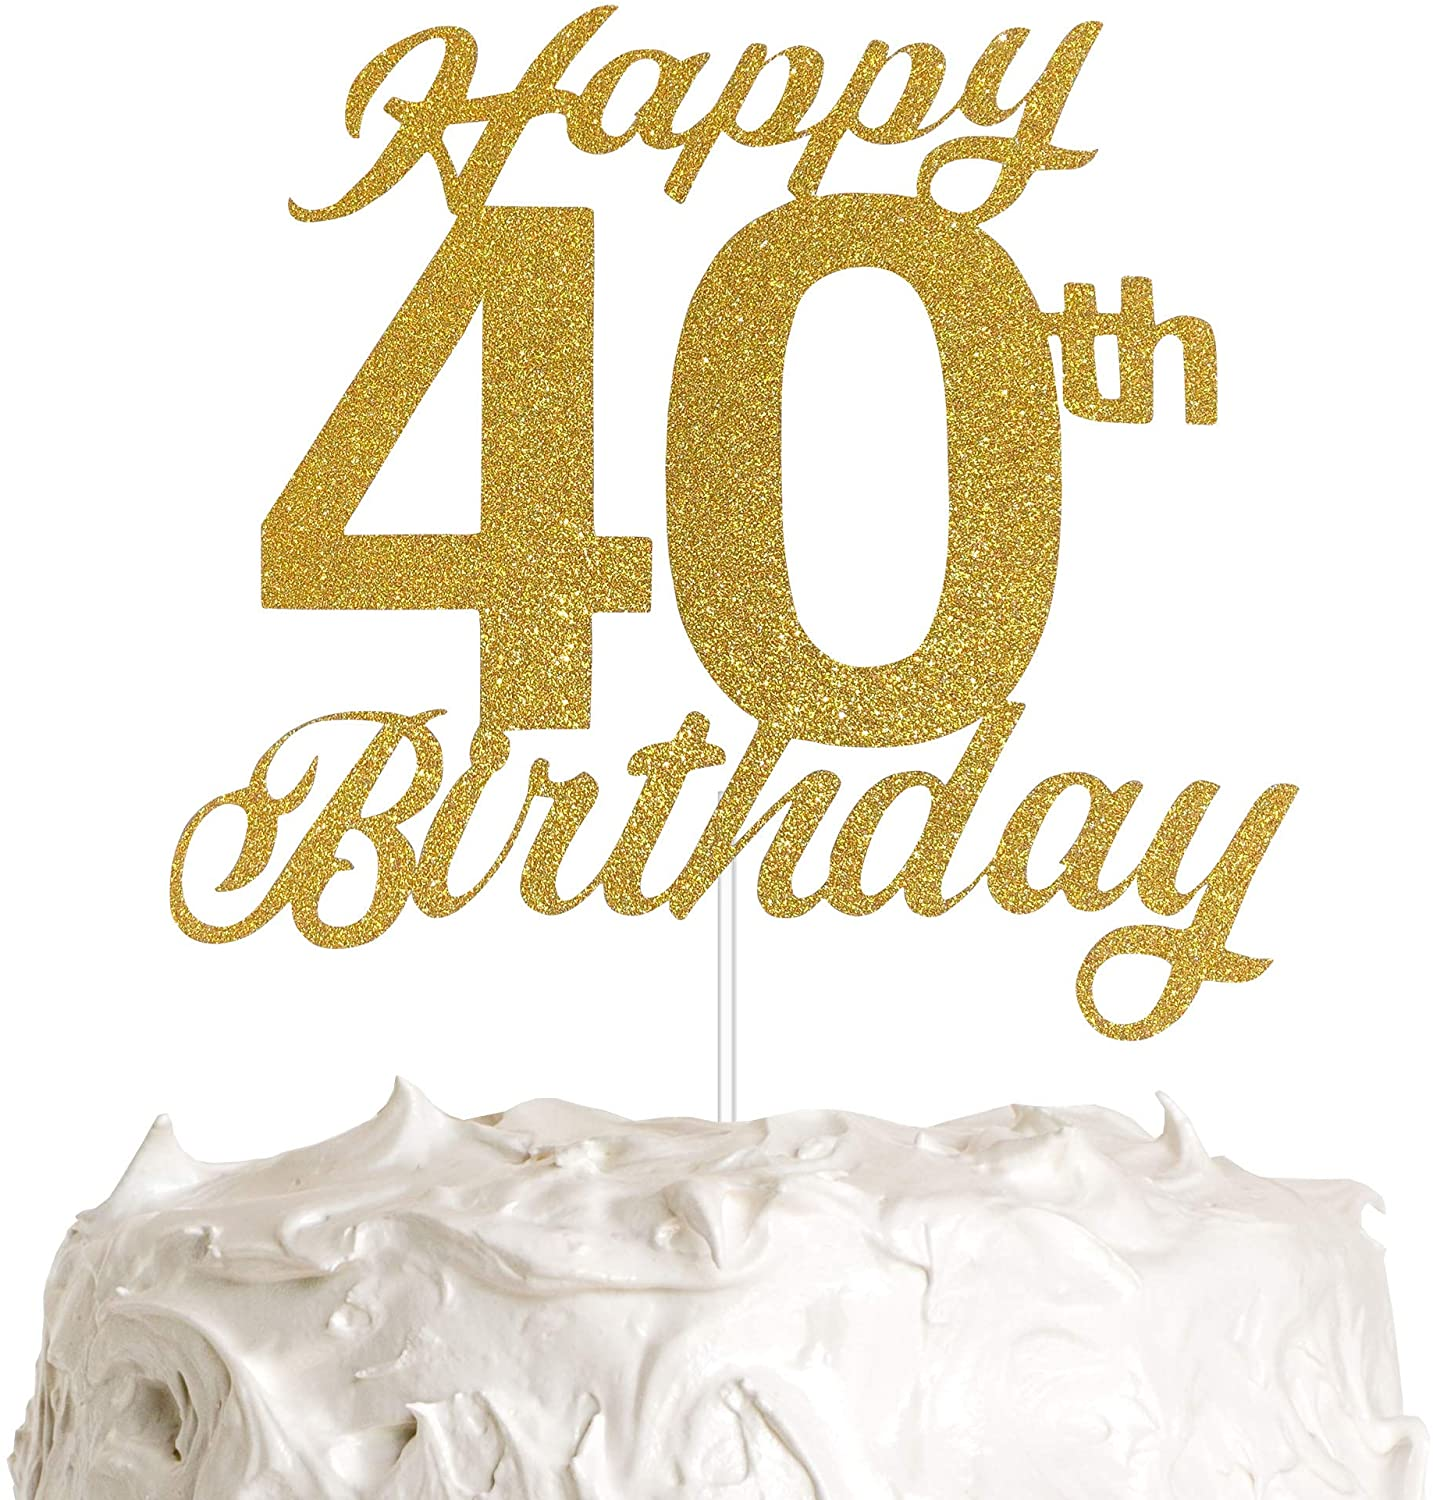 40th Birthday Cake Topper, 40th Happy Birthday Party Decoration with Premium Gold Glitter